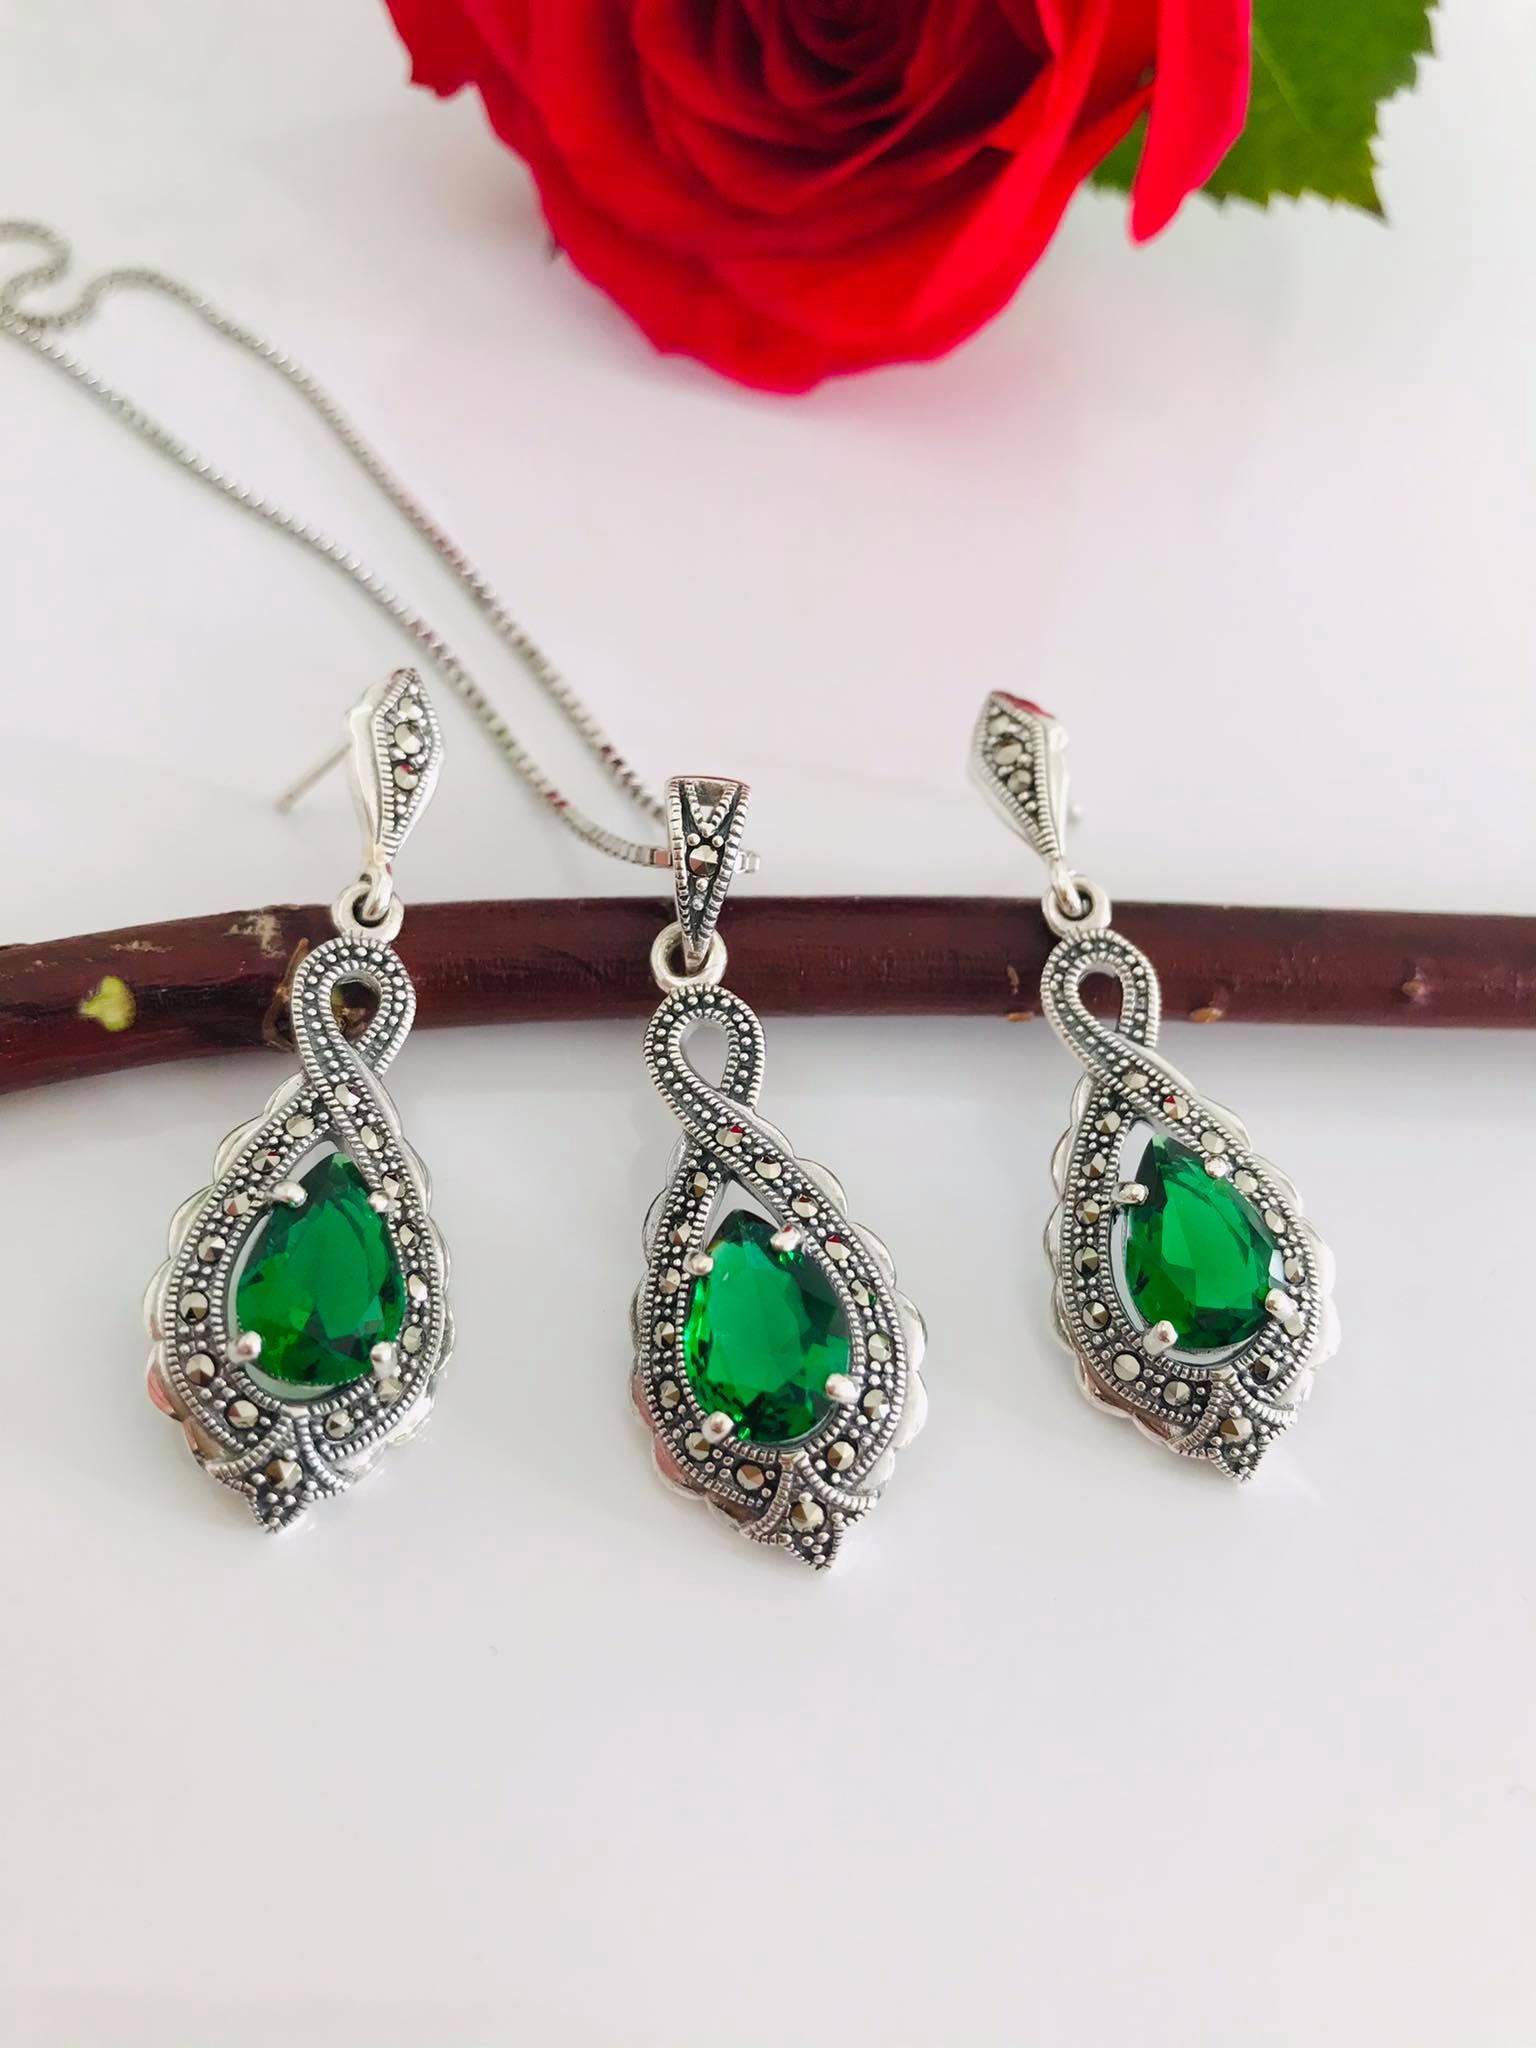 Timeless Infinity Teardrop cutting Created Emerald with Swarovski Marcasite Earrings and Necklace 18 or 20 inch chain Image